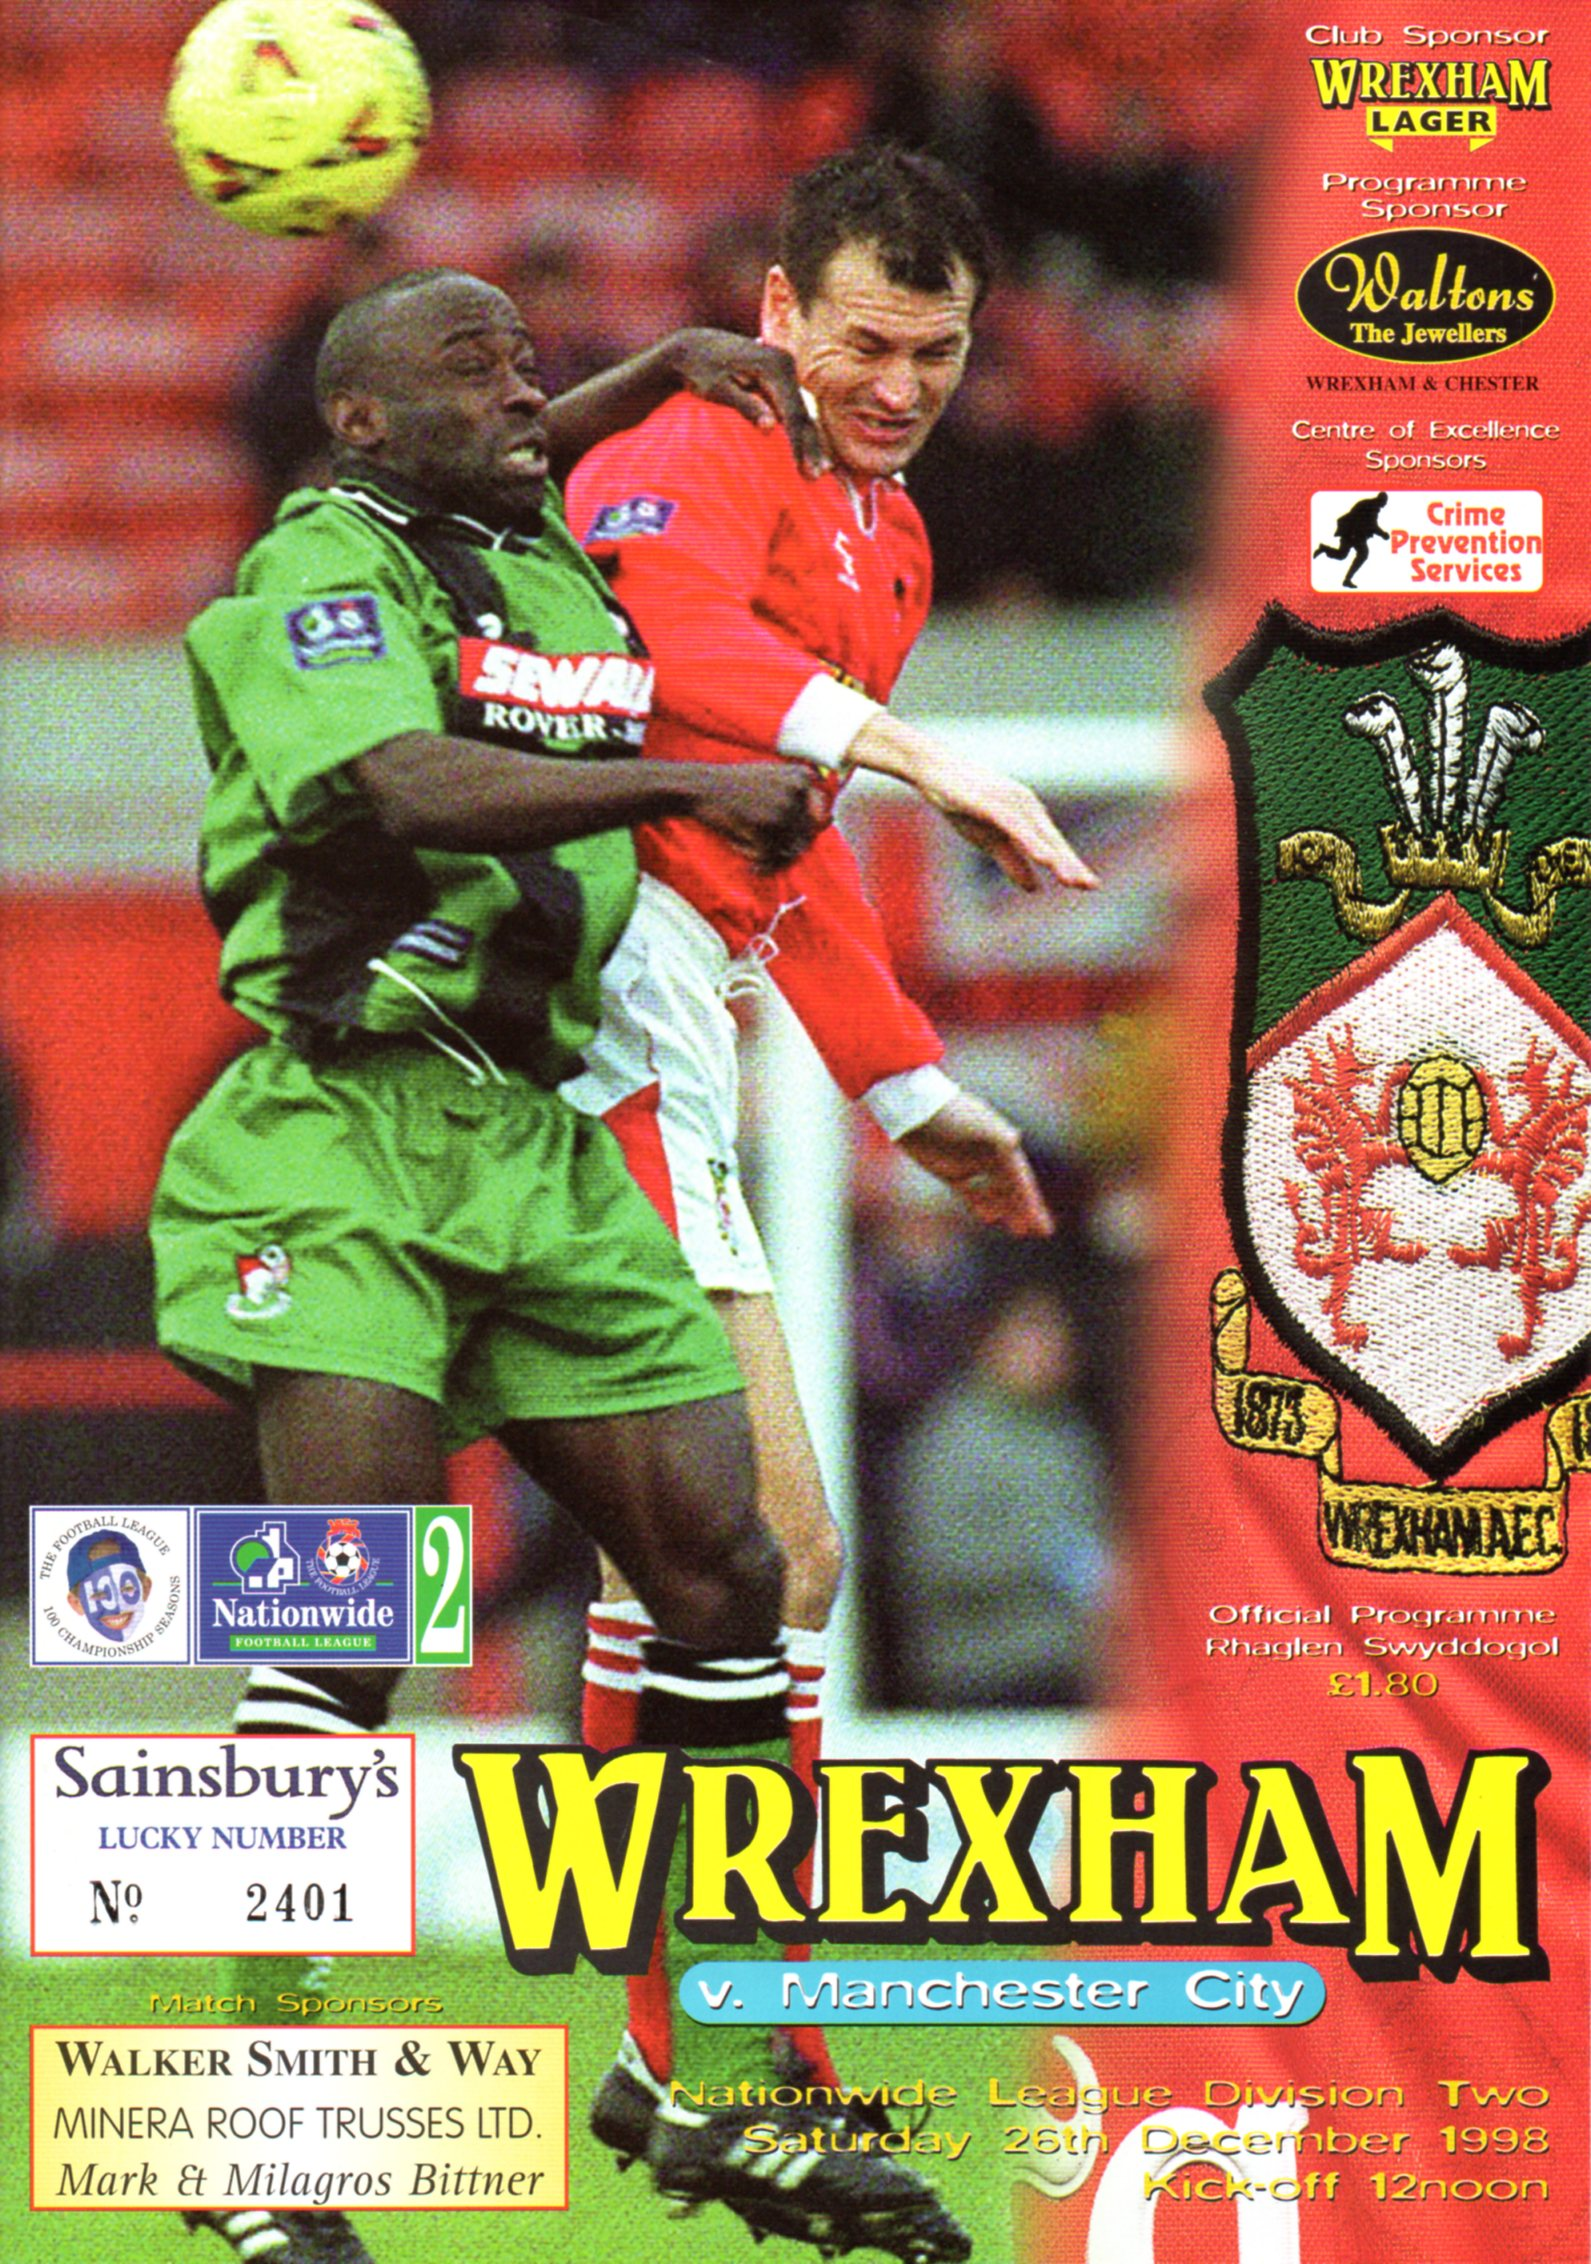 12 games of Christmas: A watershed win at Wrexham